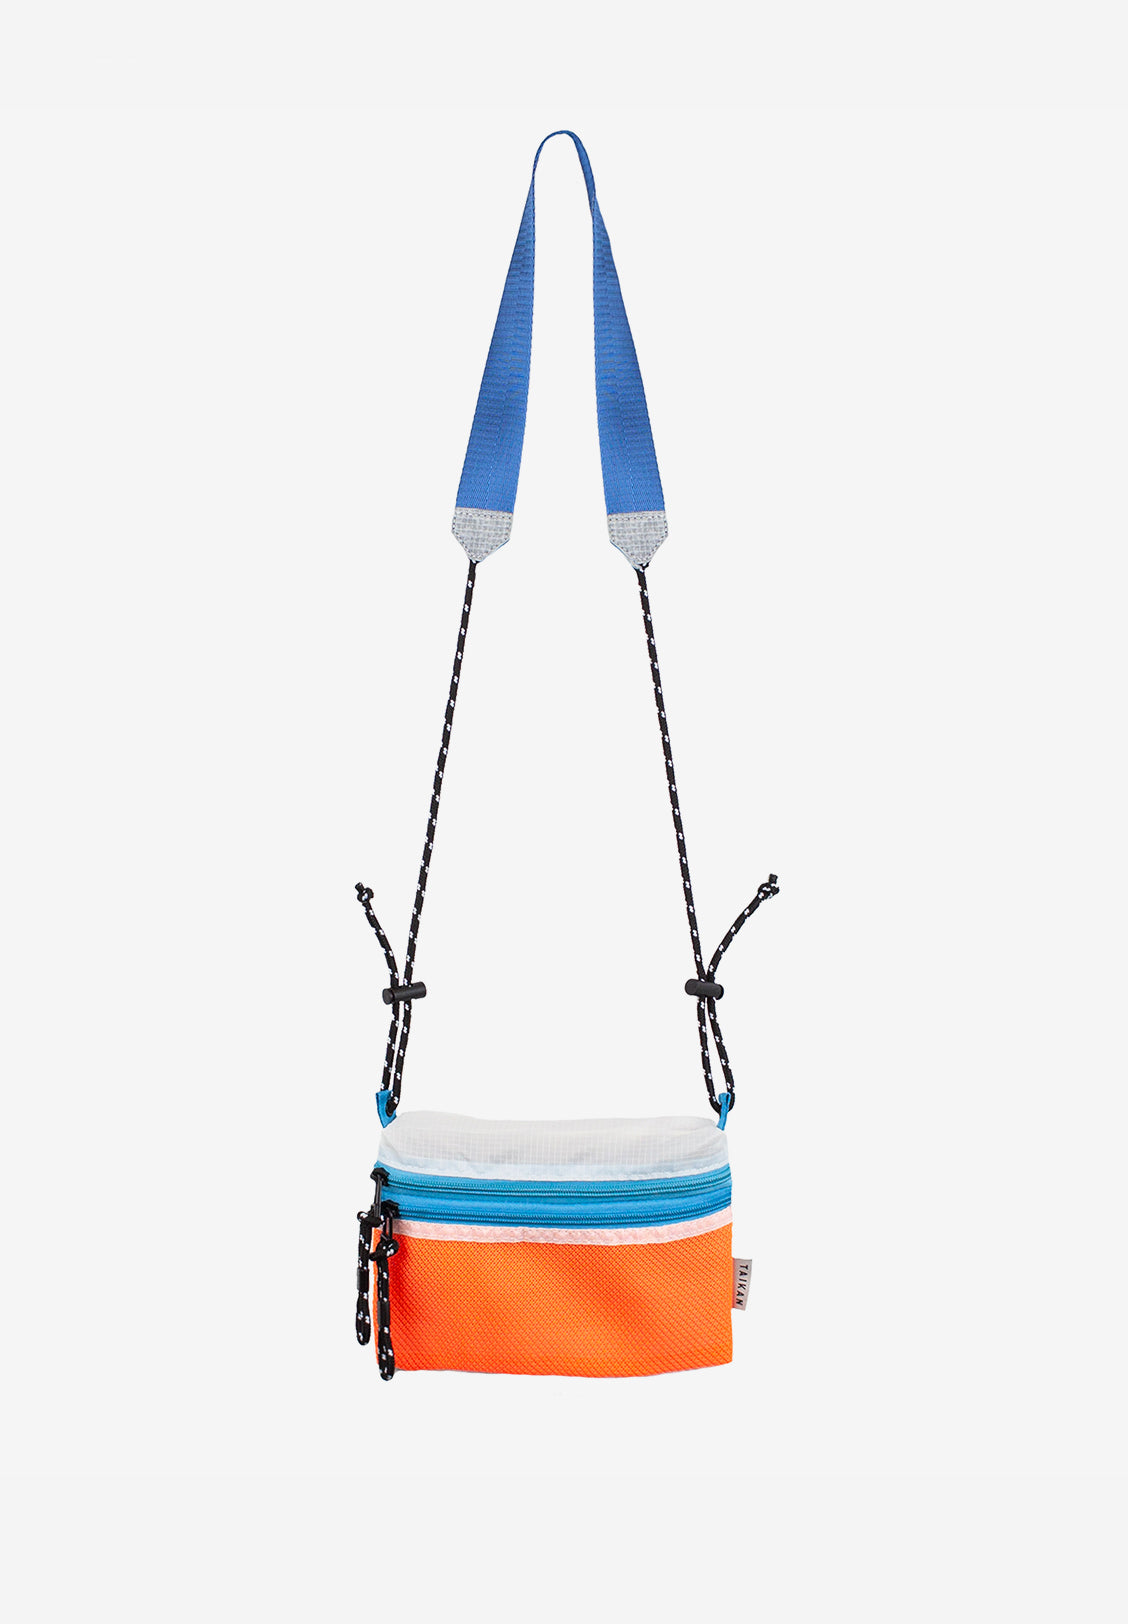 SACOCHE BAG Small, Orange/White/Teal